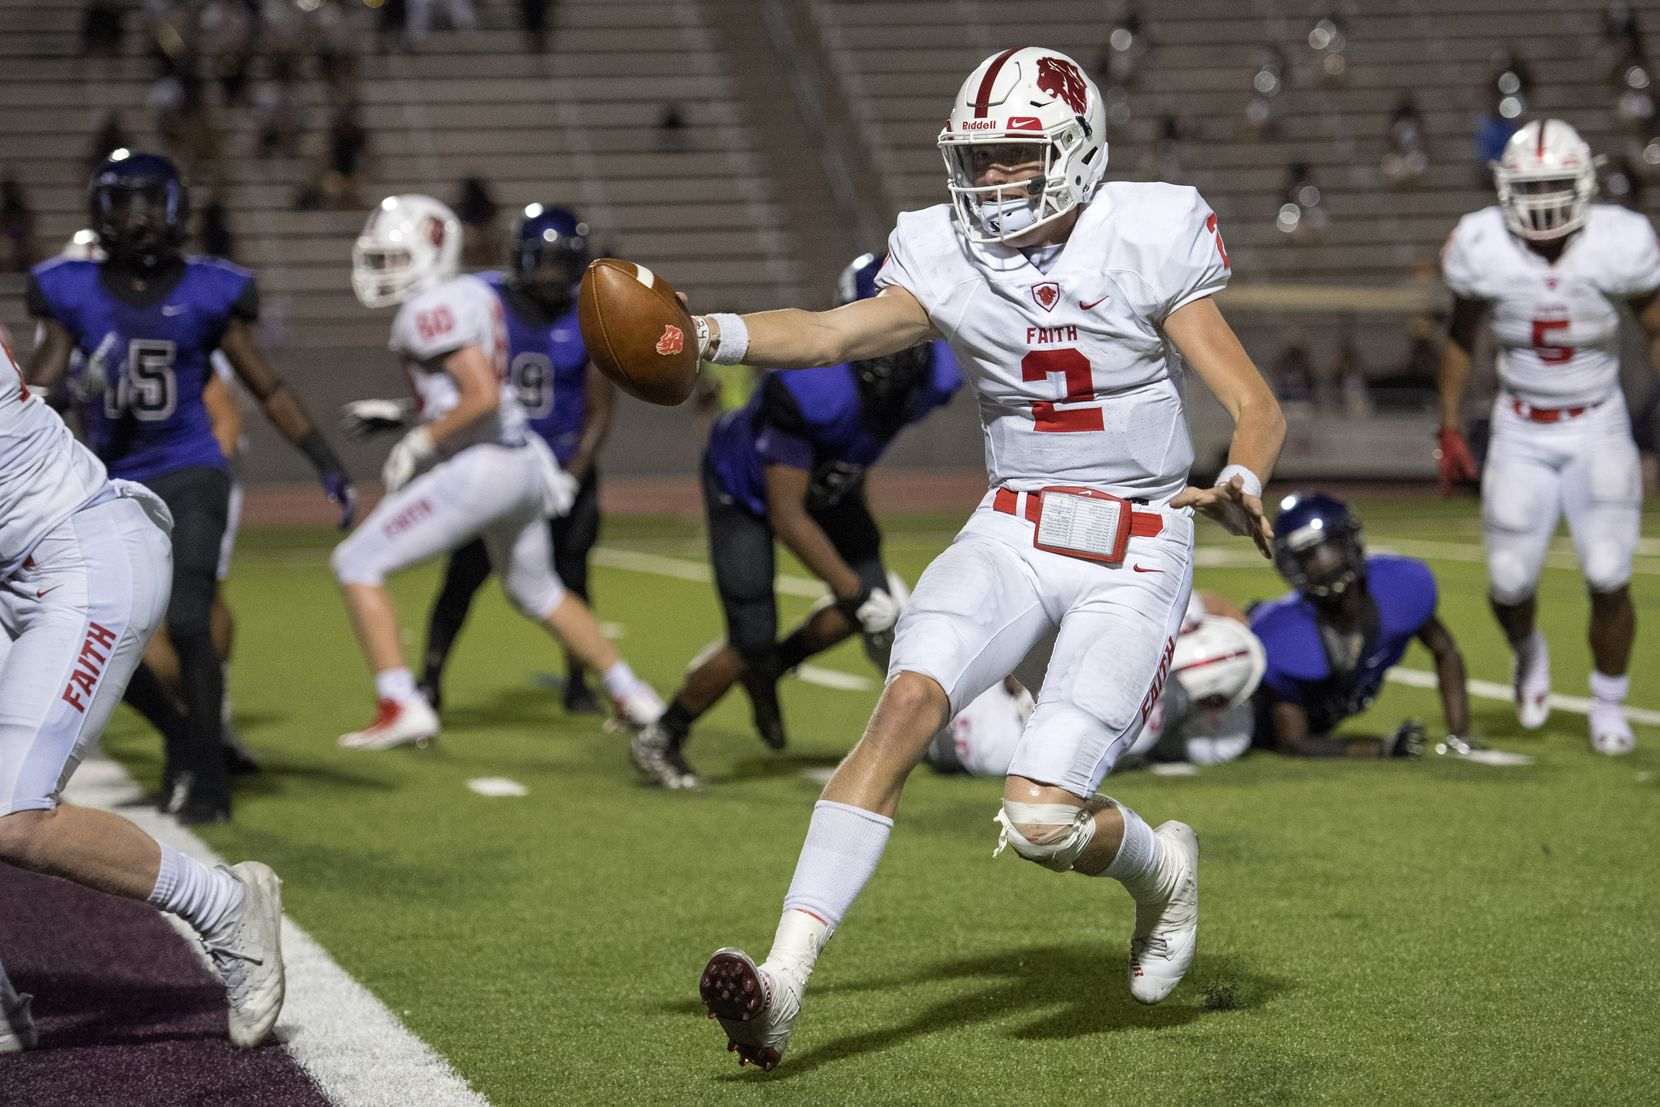 Grapevine Faith quarterback Deuce Hogan (2) extends the ball towards the goal line on a touchdown run against Lincoln in the first half of a high school football game, Friday, September 22, 2017 at John Kincaide Stadium in Dallas. (Jeffrey McWhorter/Special Contributor)